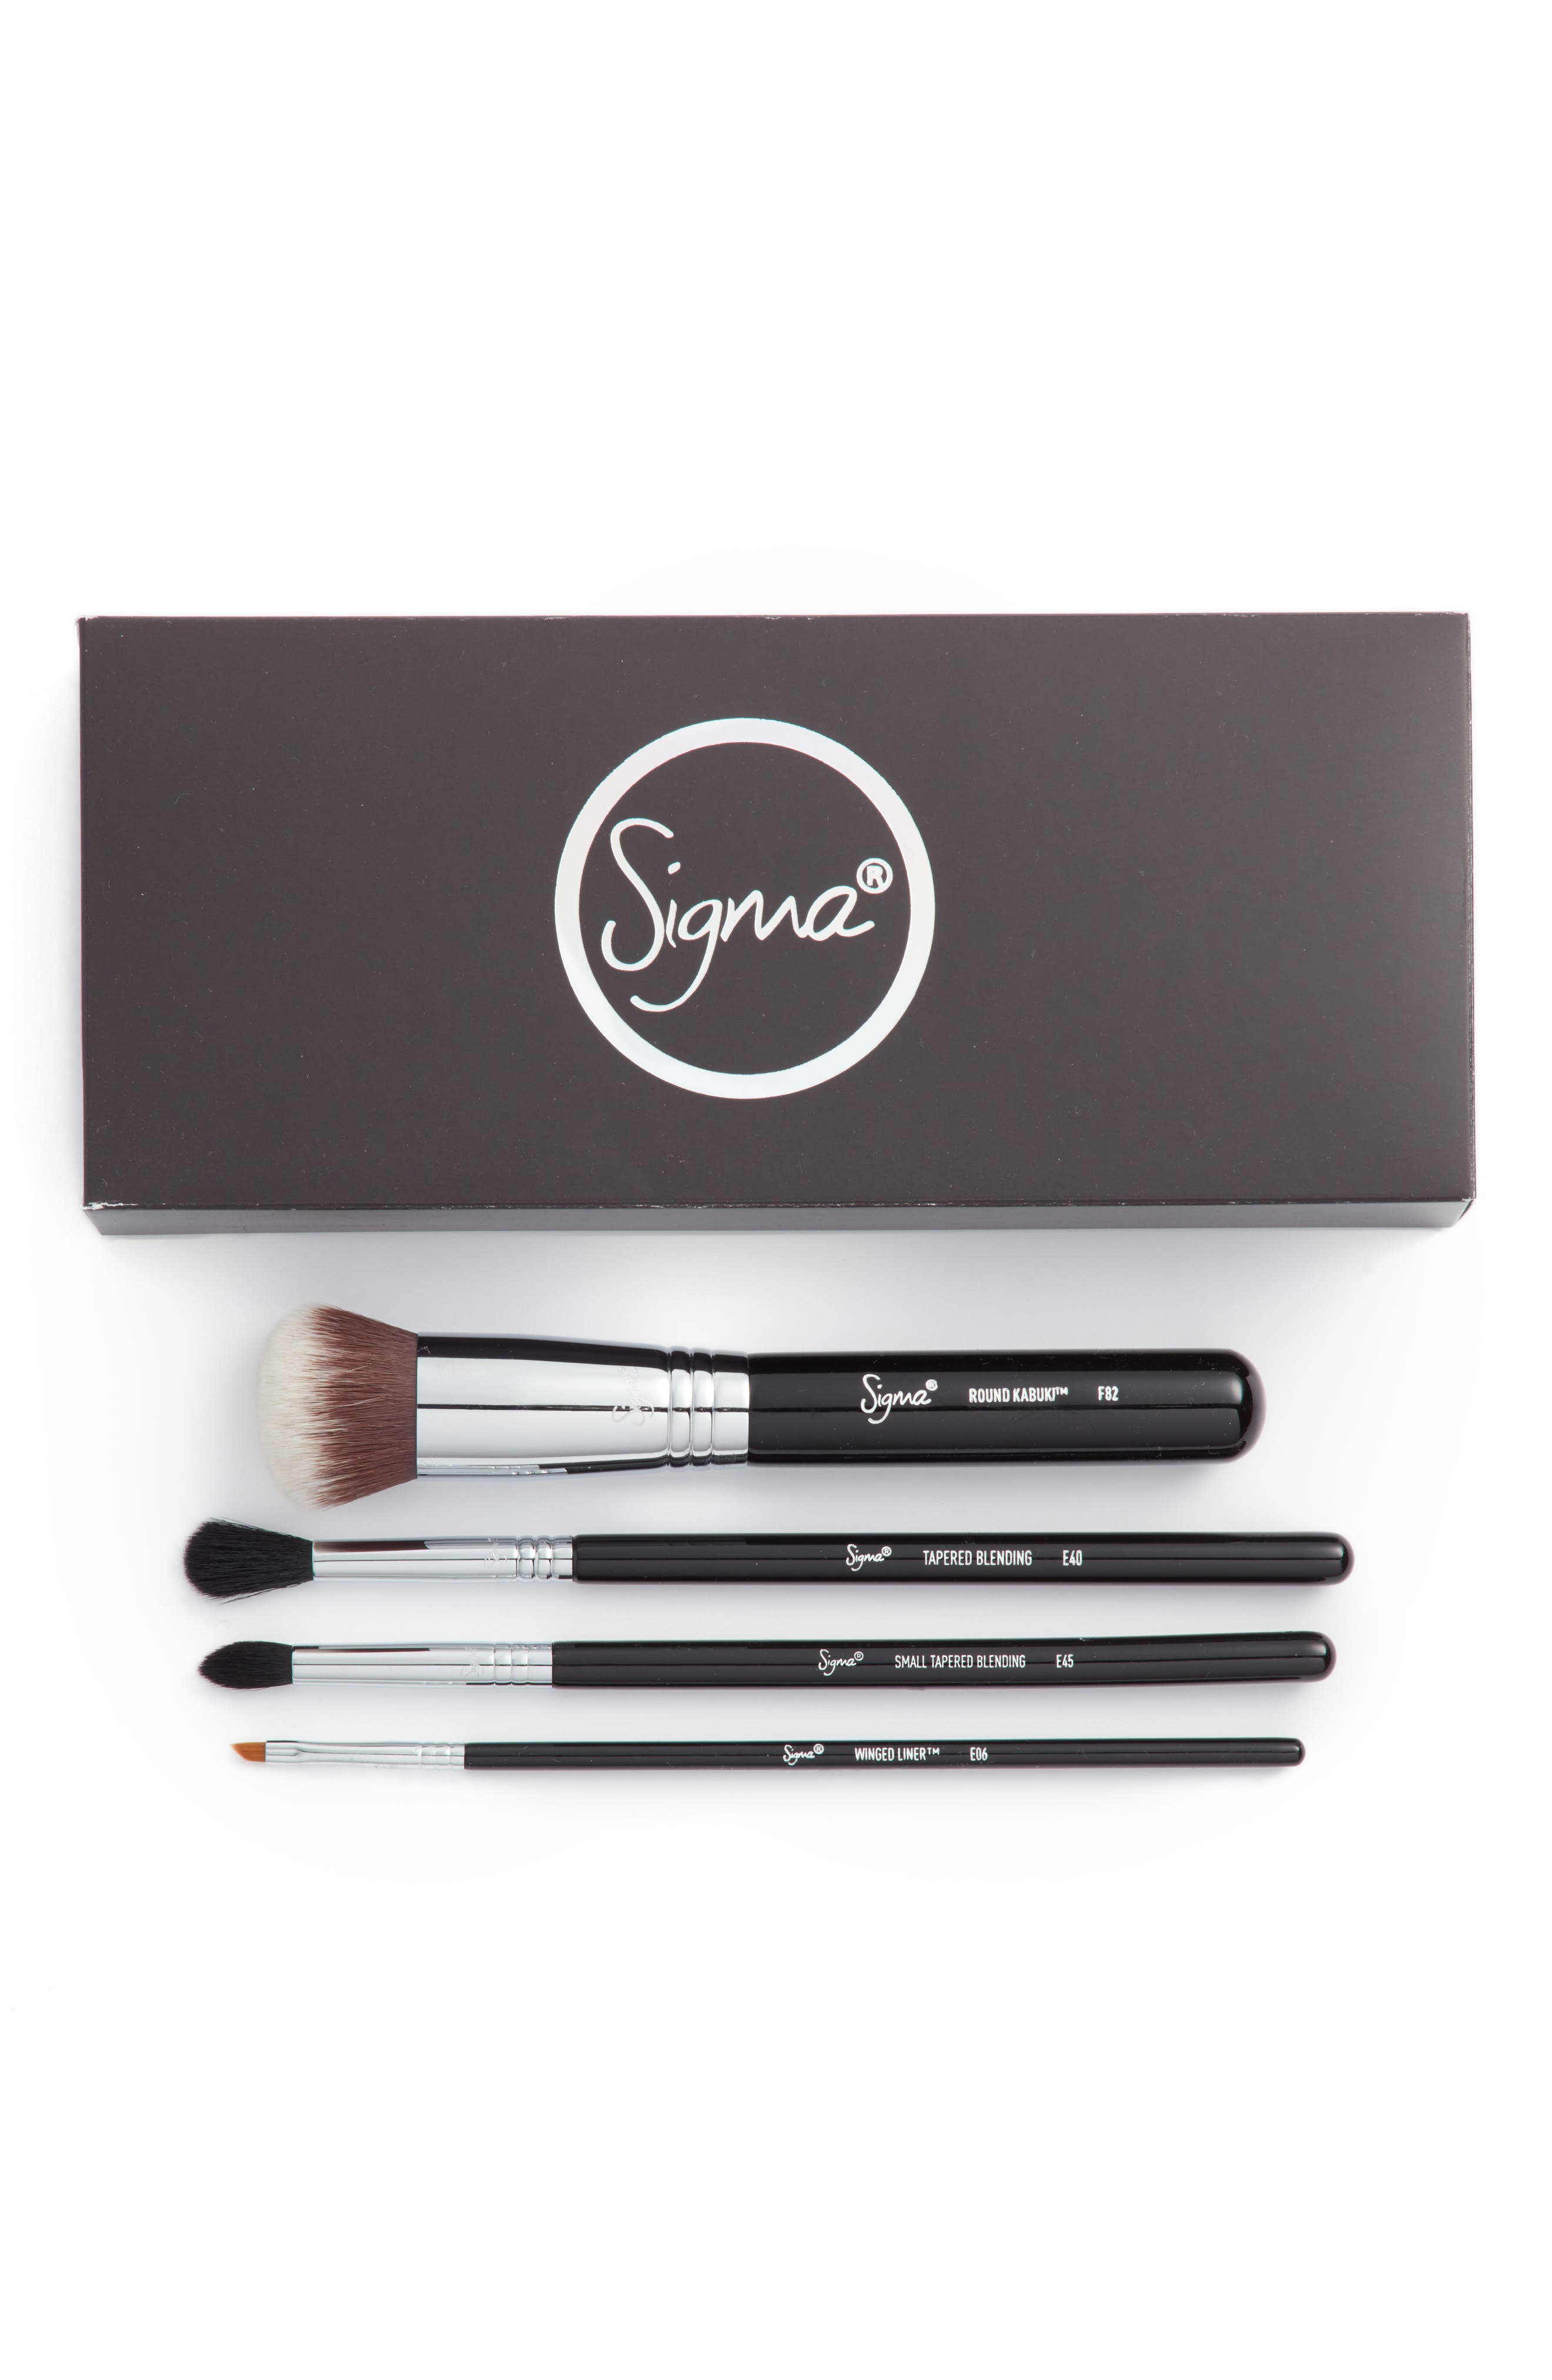 Sigma Beauty Classically Beautiful Brush Set ($73 Value)